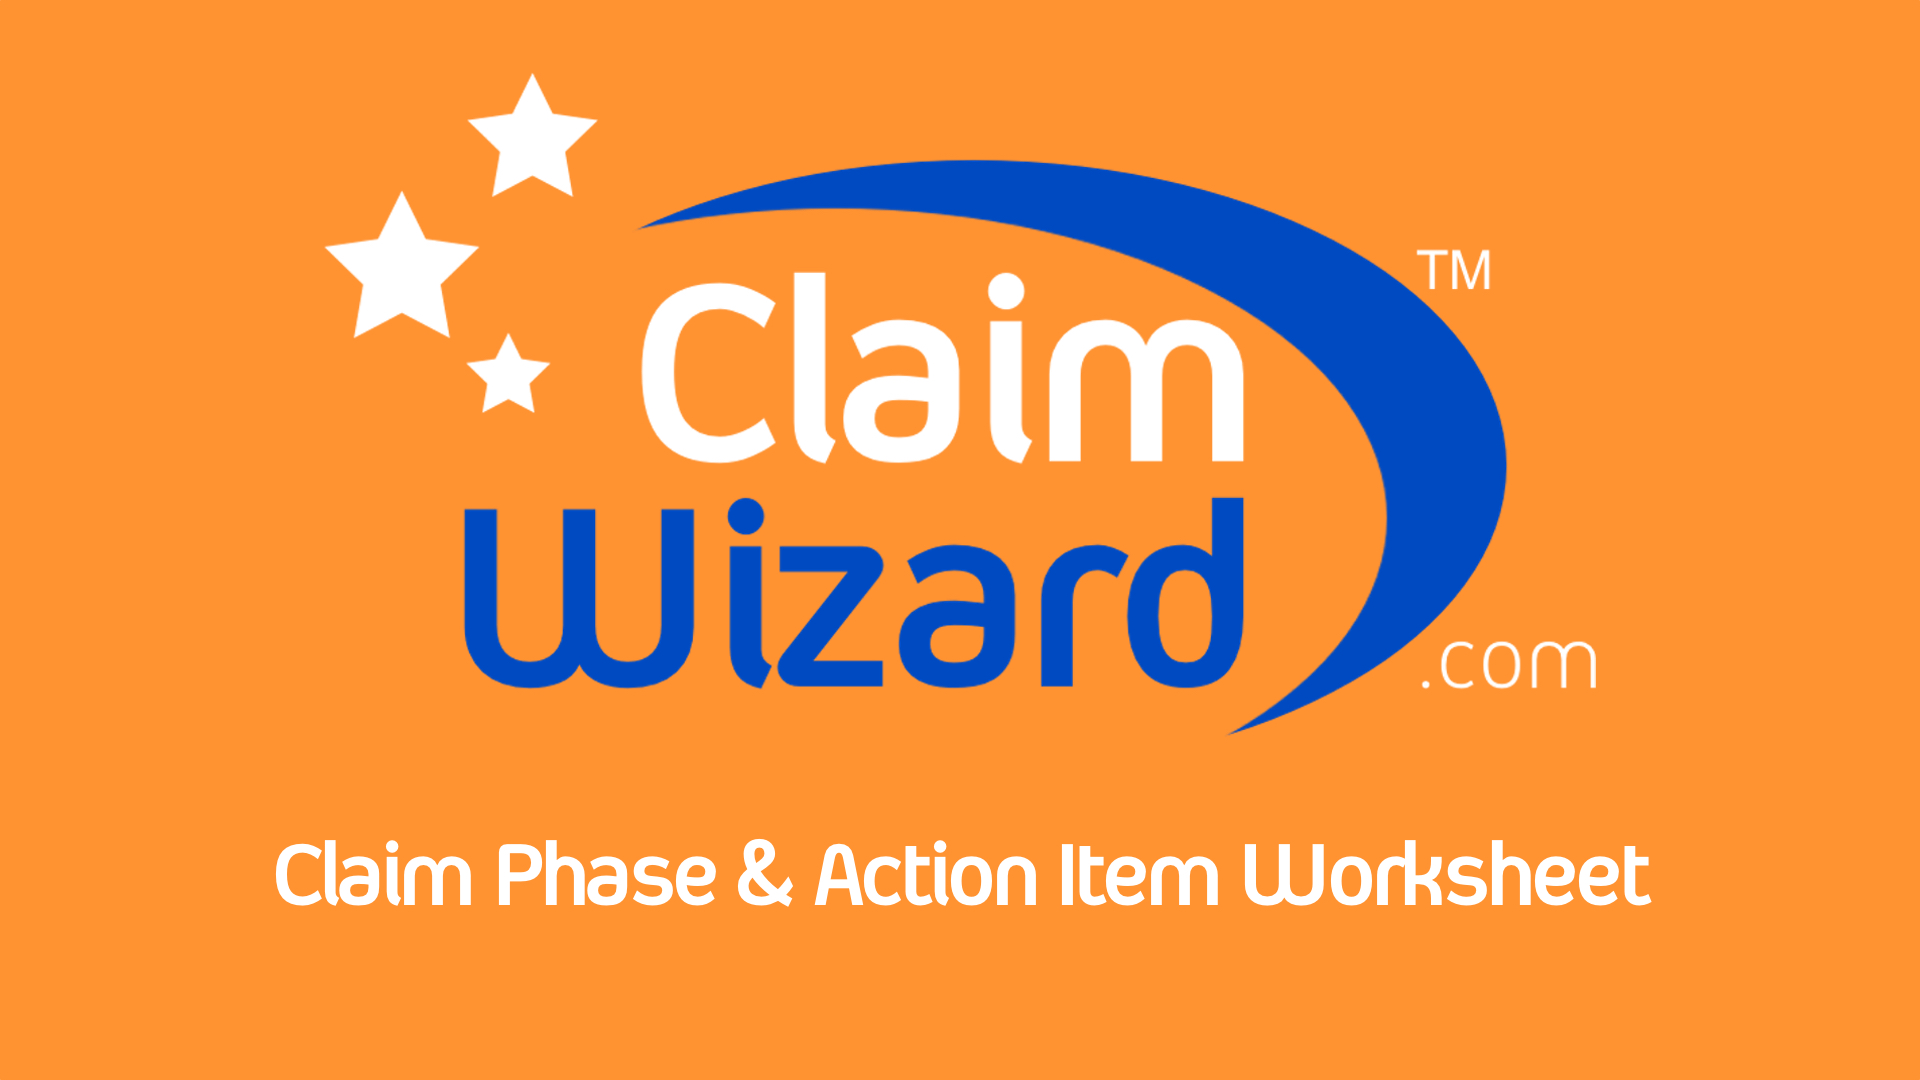 Claim Phase Amp Action Item Worksheet